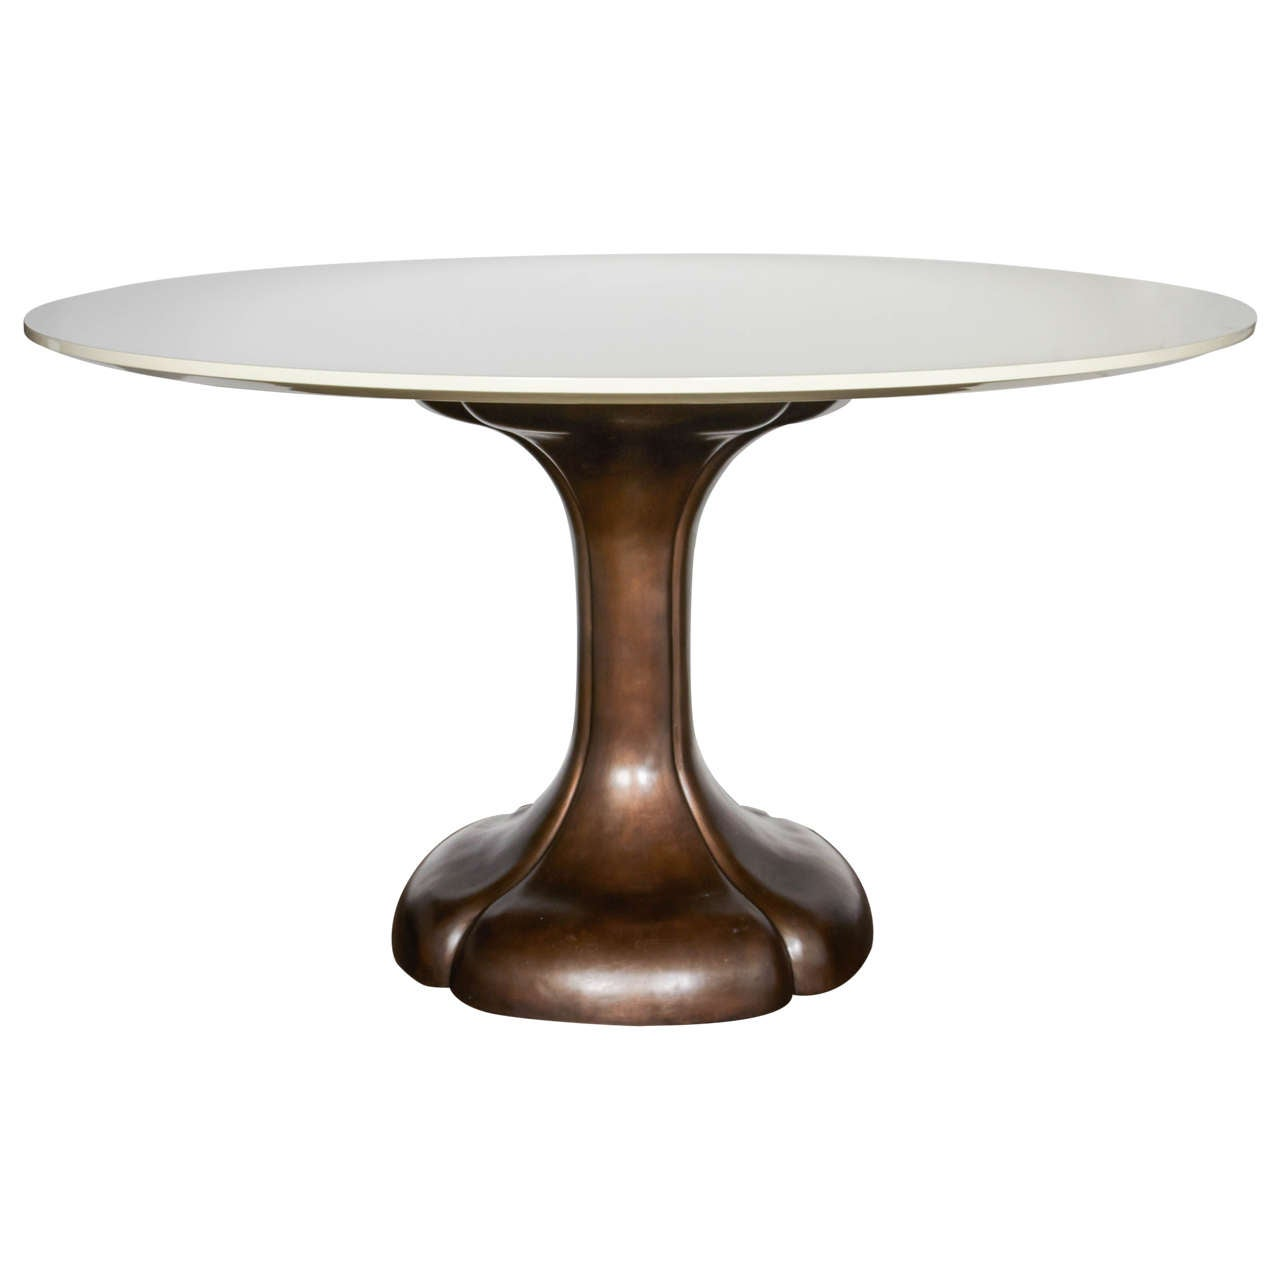 Art Nouveau Style Round Dining Table With Bronze Pedestal